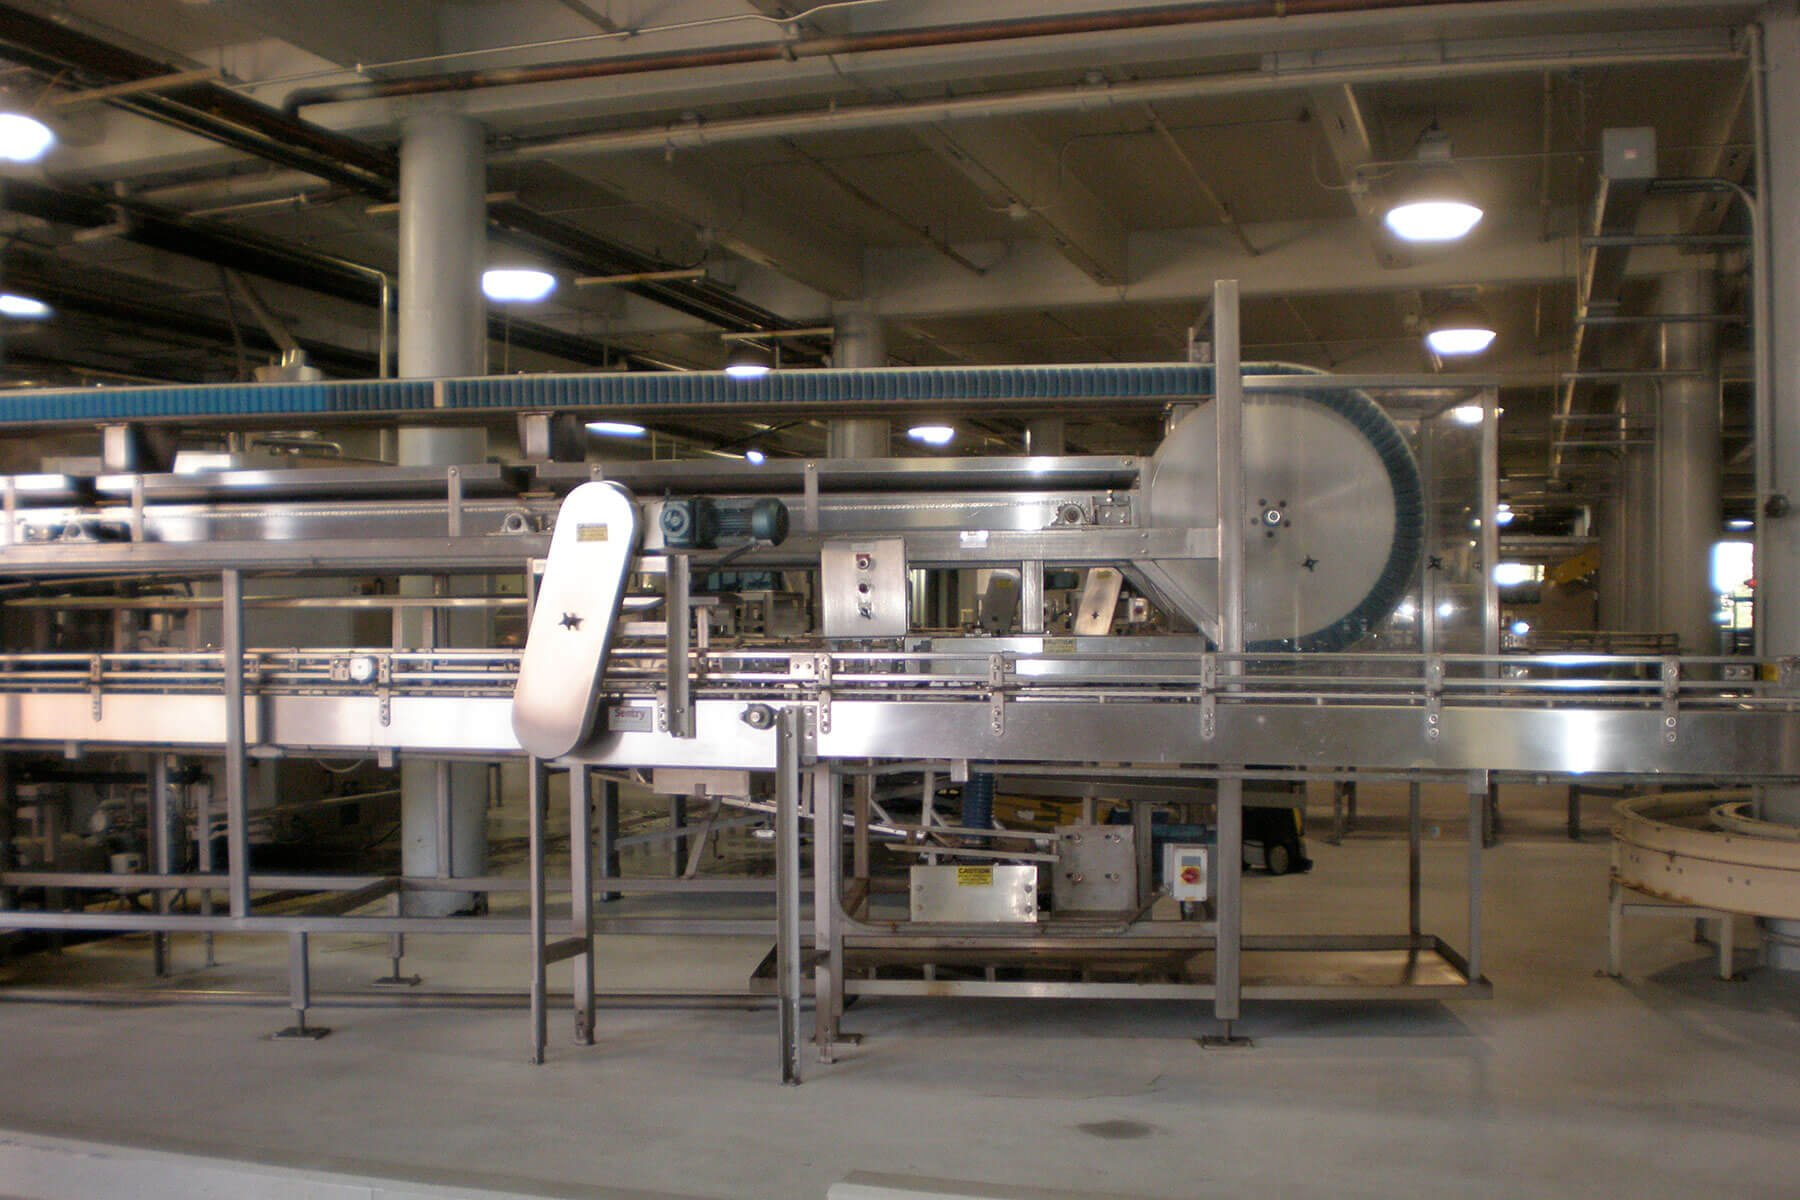 Inside the production facility at Gordon Biersch Brewing Company in San Jose, California